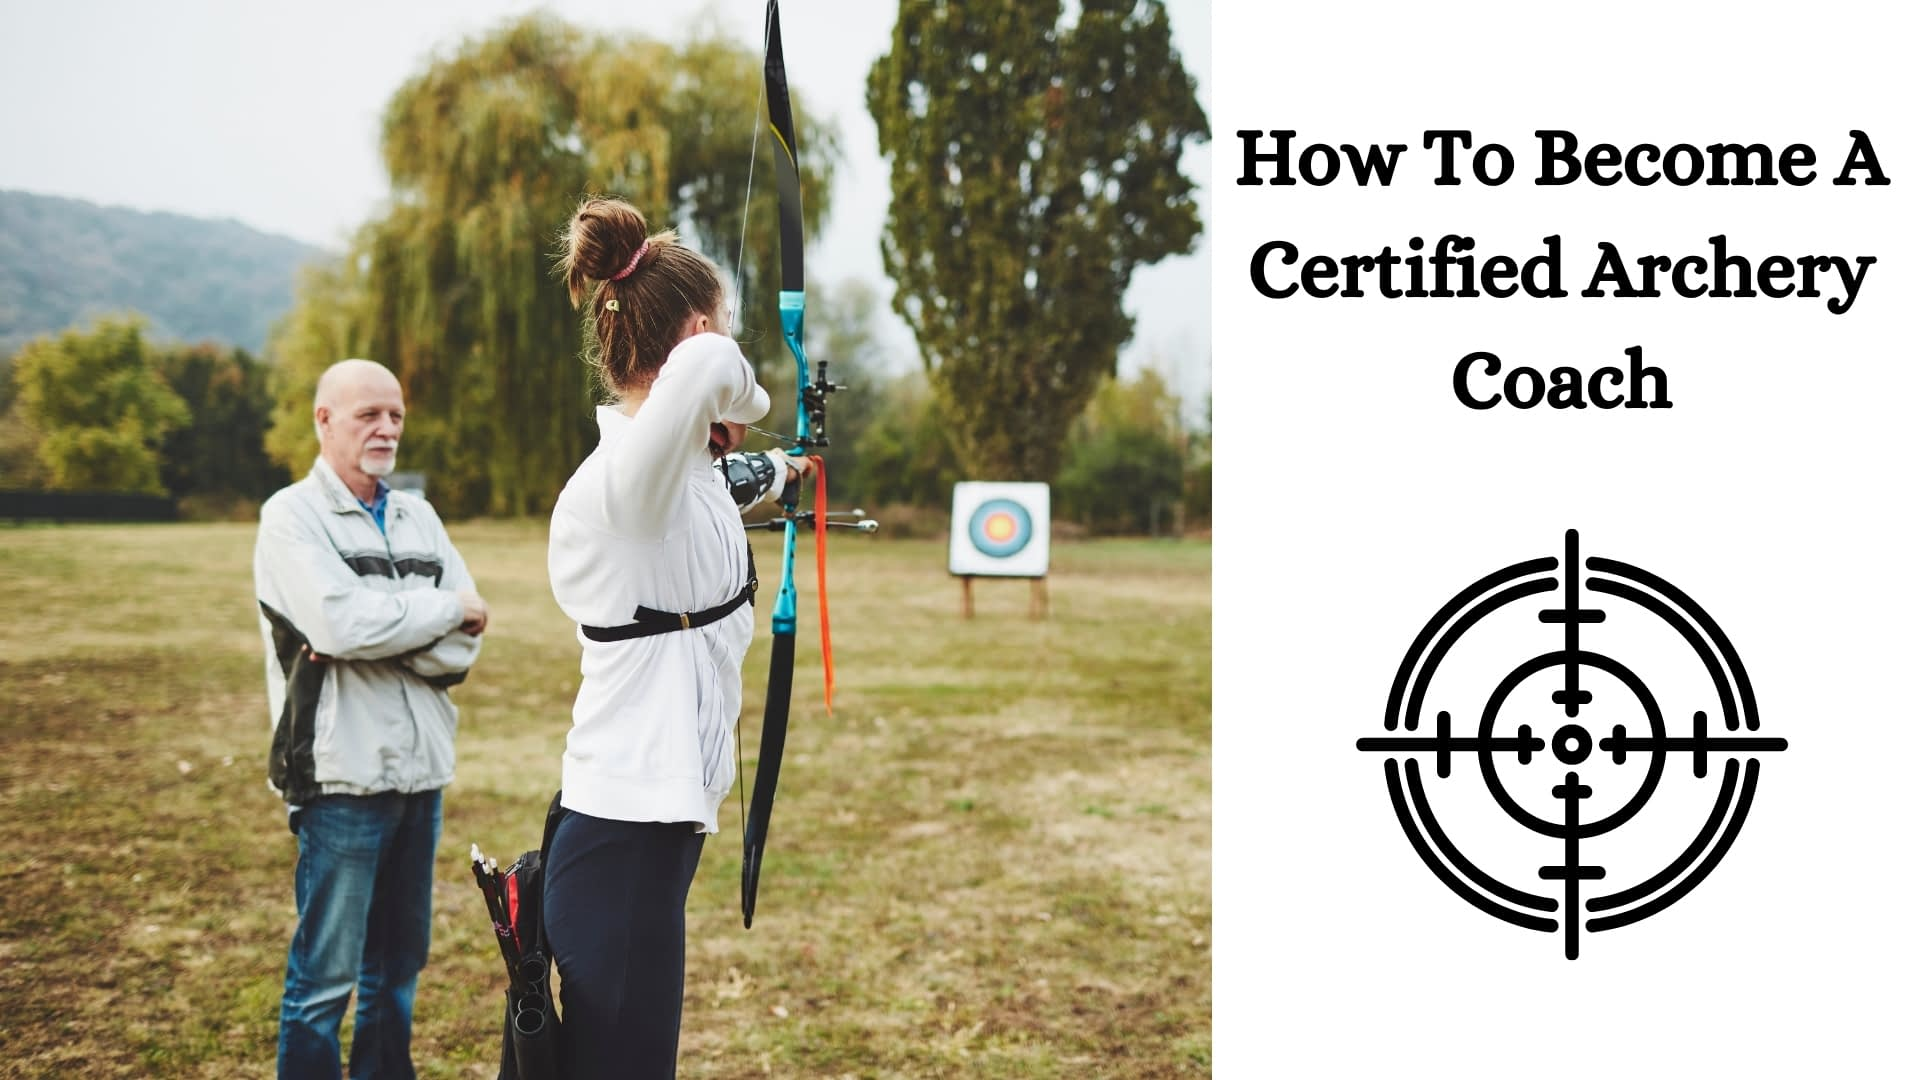 How To Become A Certified Archery Coach